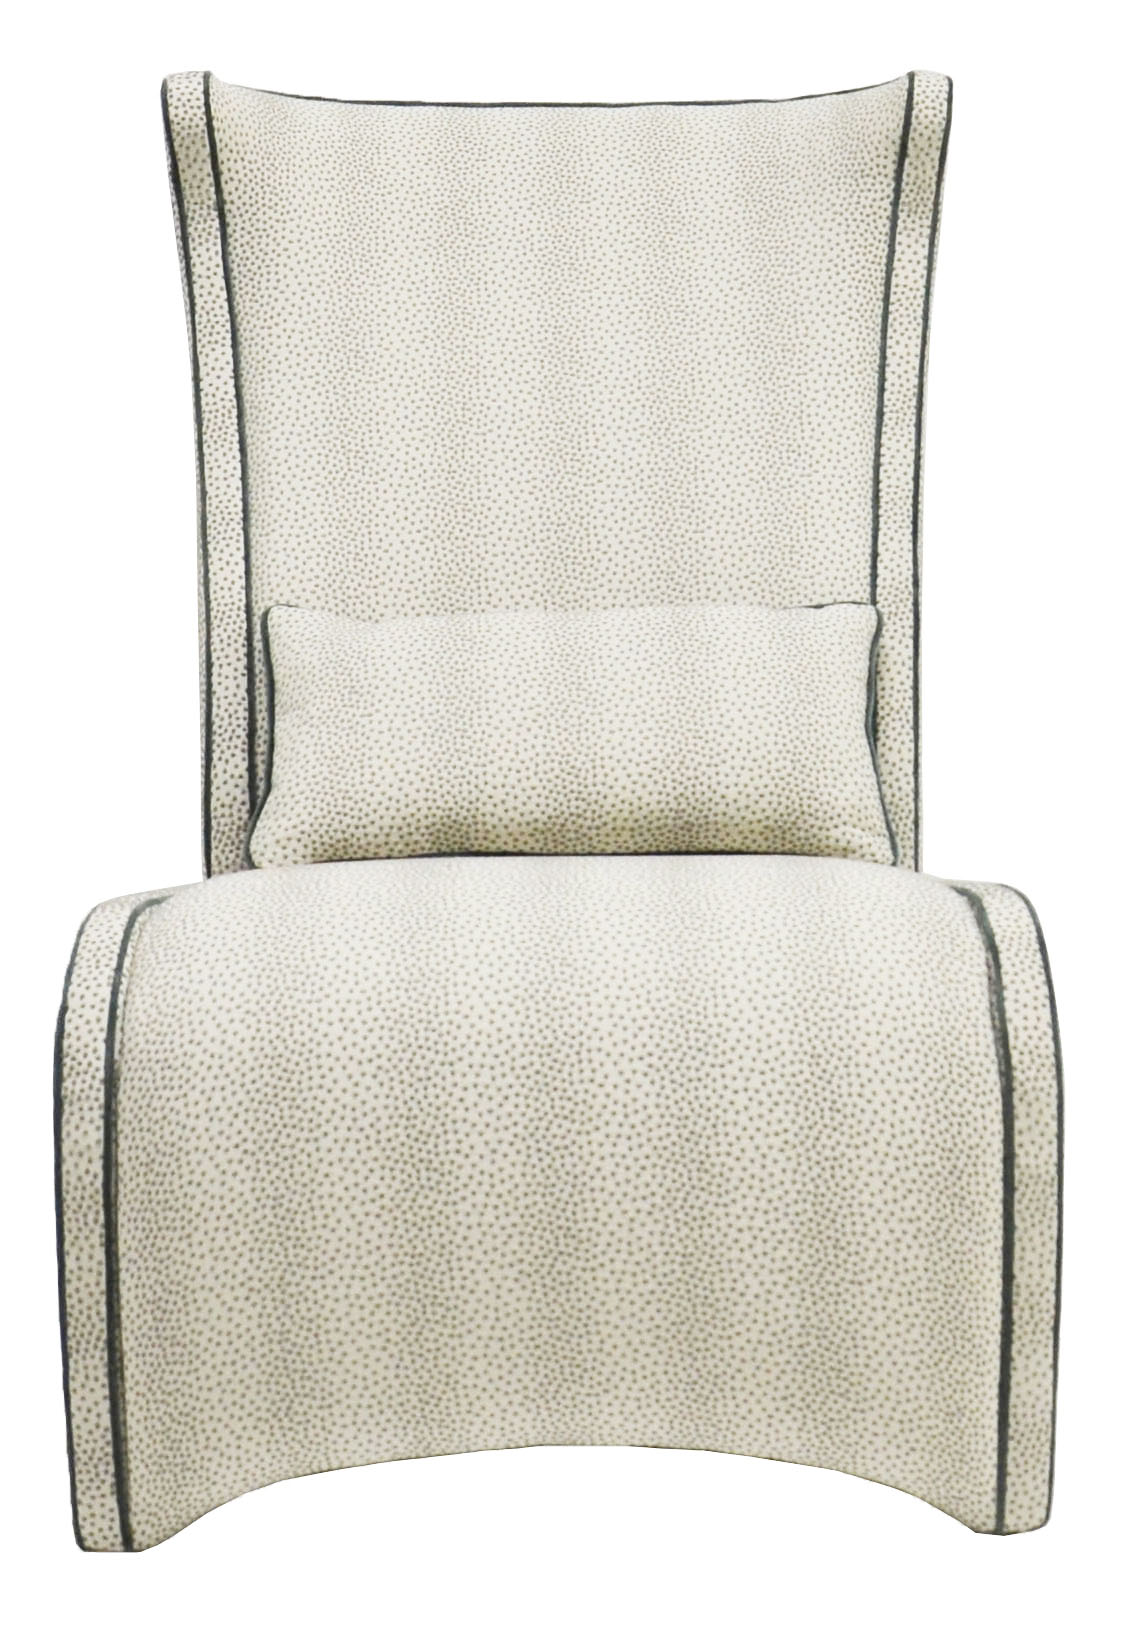 Vanguard Furniture Our Products 9002 Ch Toggenburg Chair